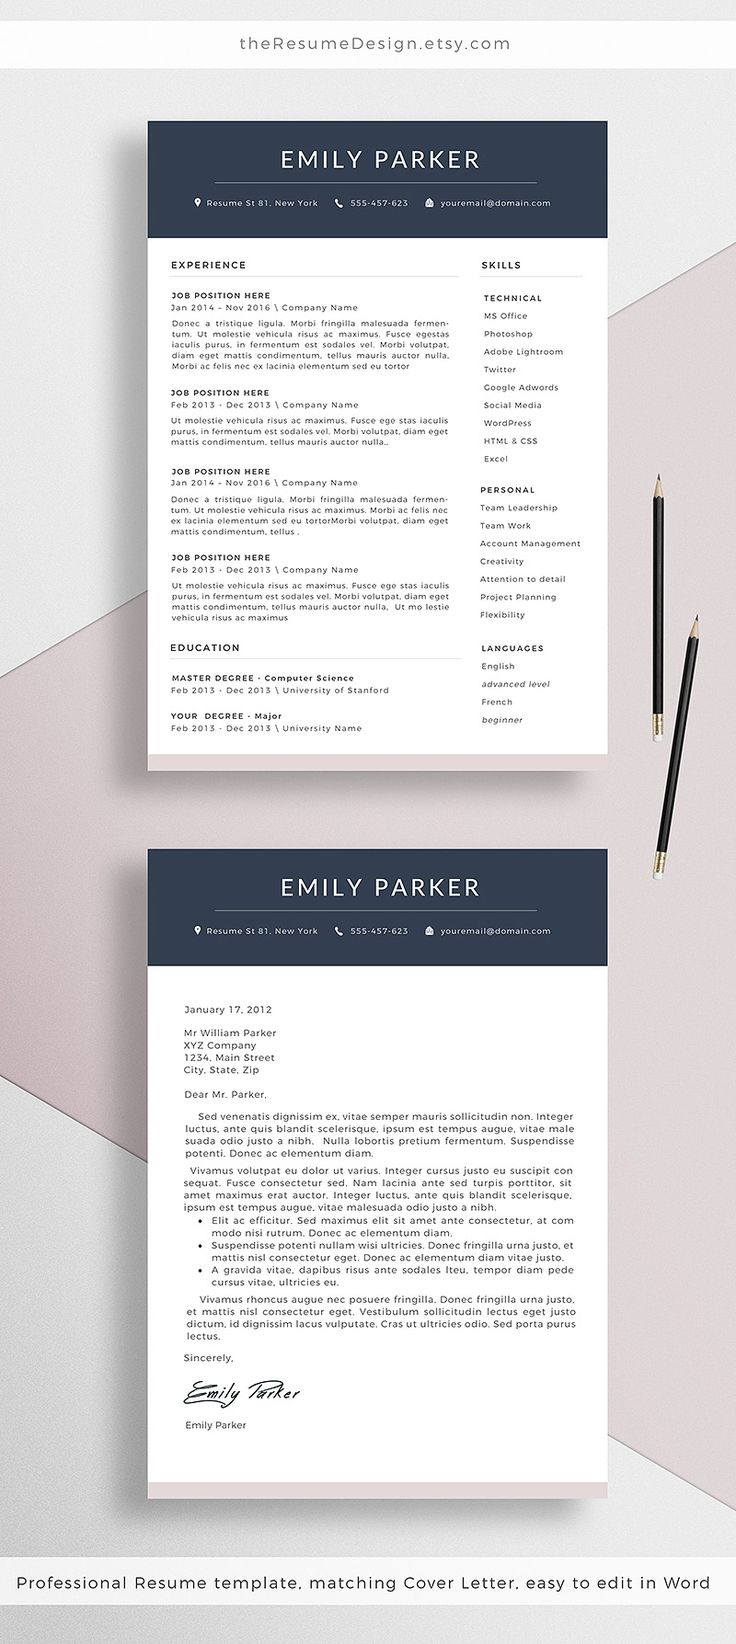 Our NEW professional Resume Template + Cover Letter for Word, creative CV design || Stand out from the crowd with our professional designs.